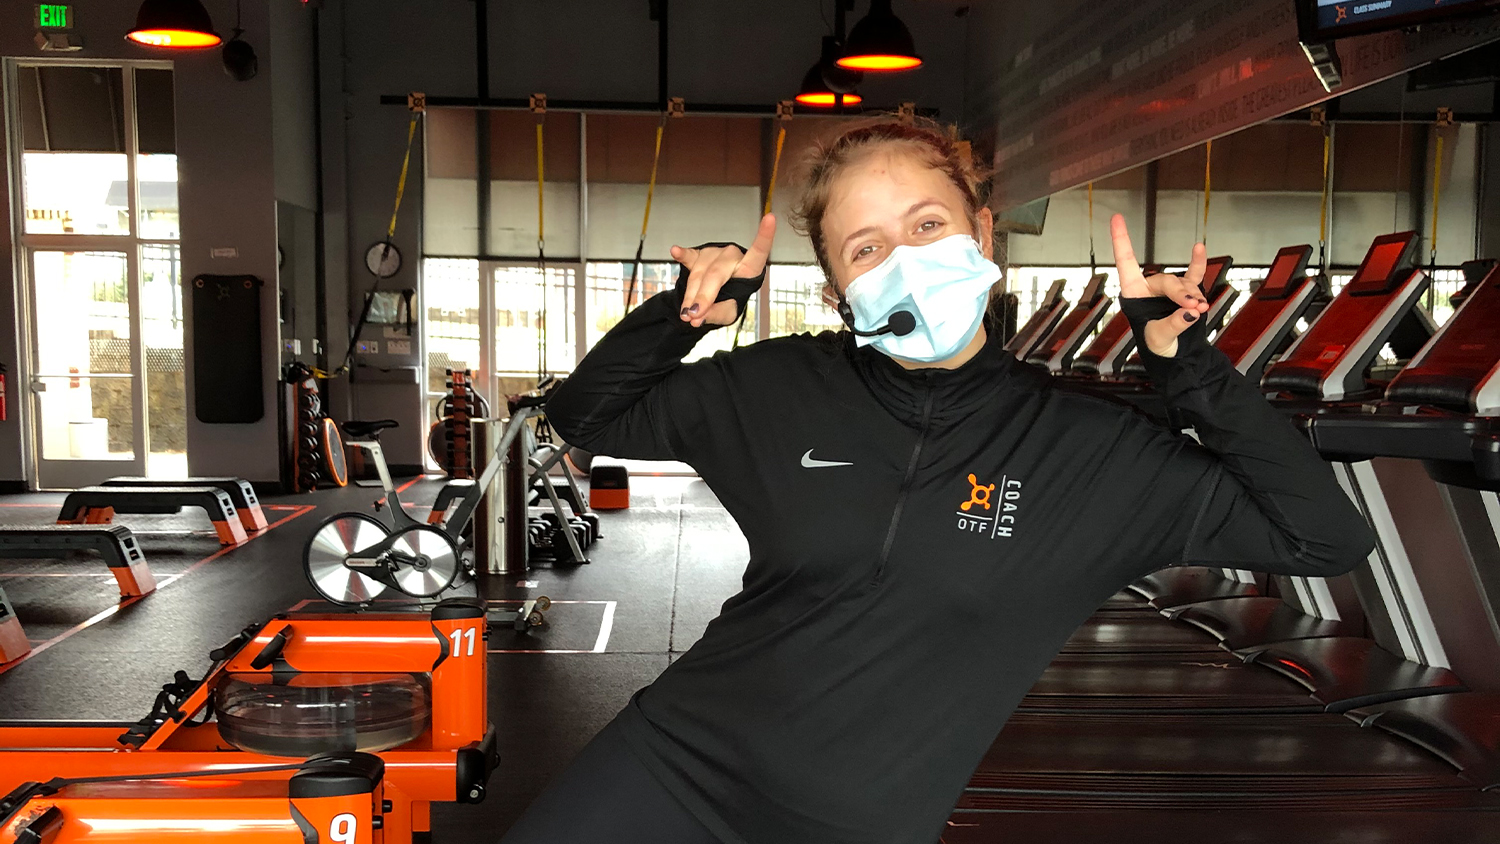 Lauren Muir in the gym at Orangetheory Fitness